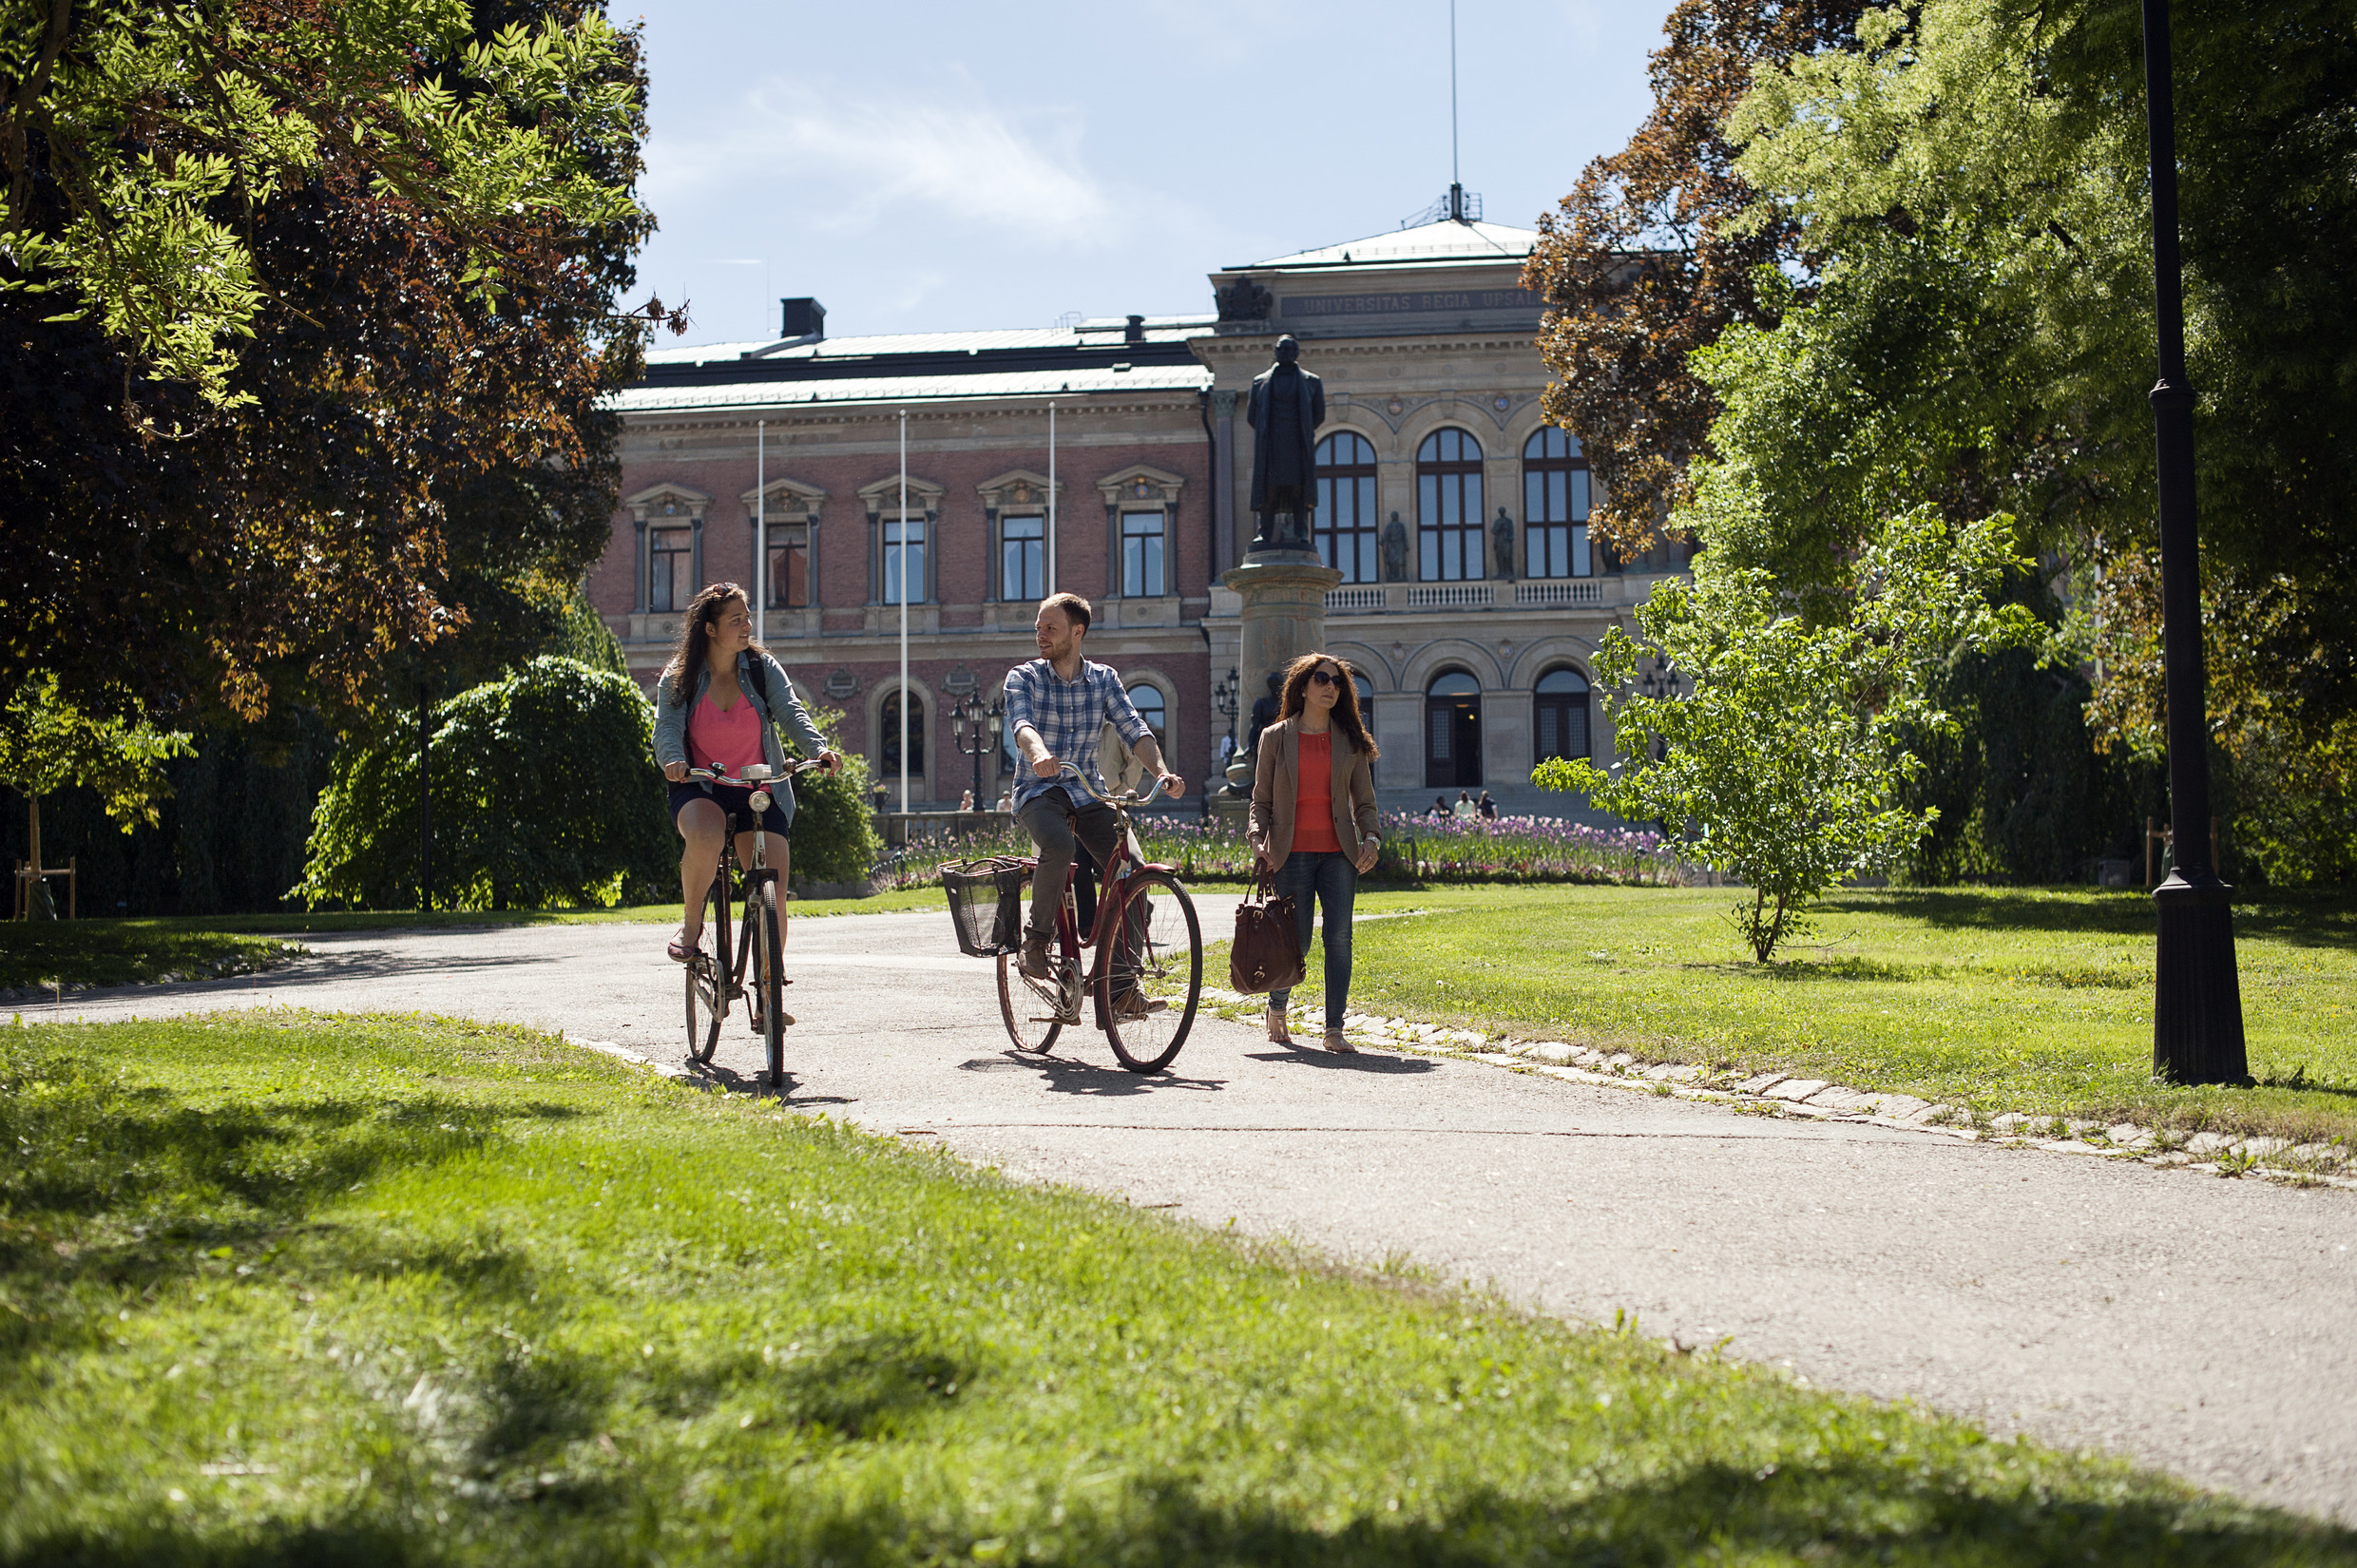 studying overseas vs locally Why studying at top local universities can be better than studying abroad for undergraduate studies  overseas), this article argues that studying  (locally or.